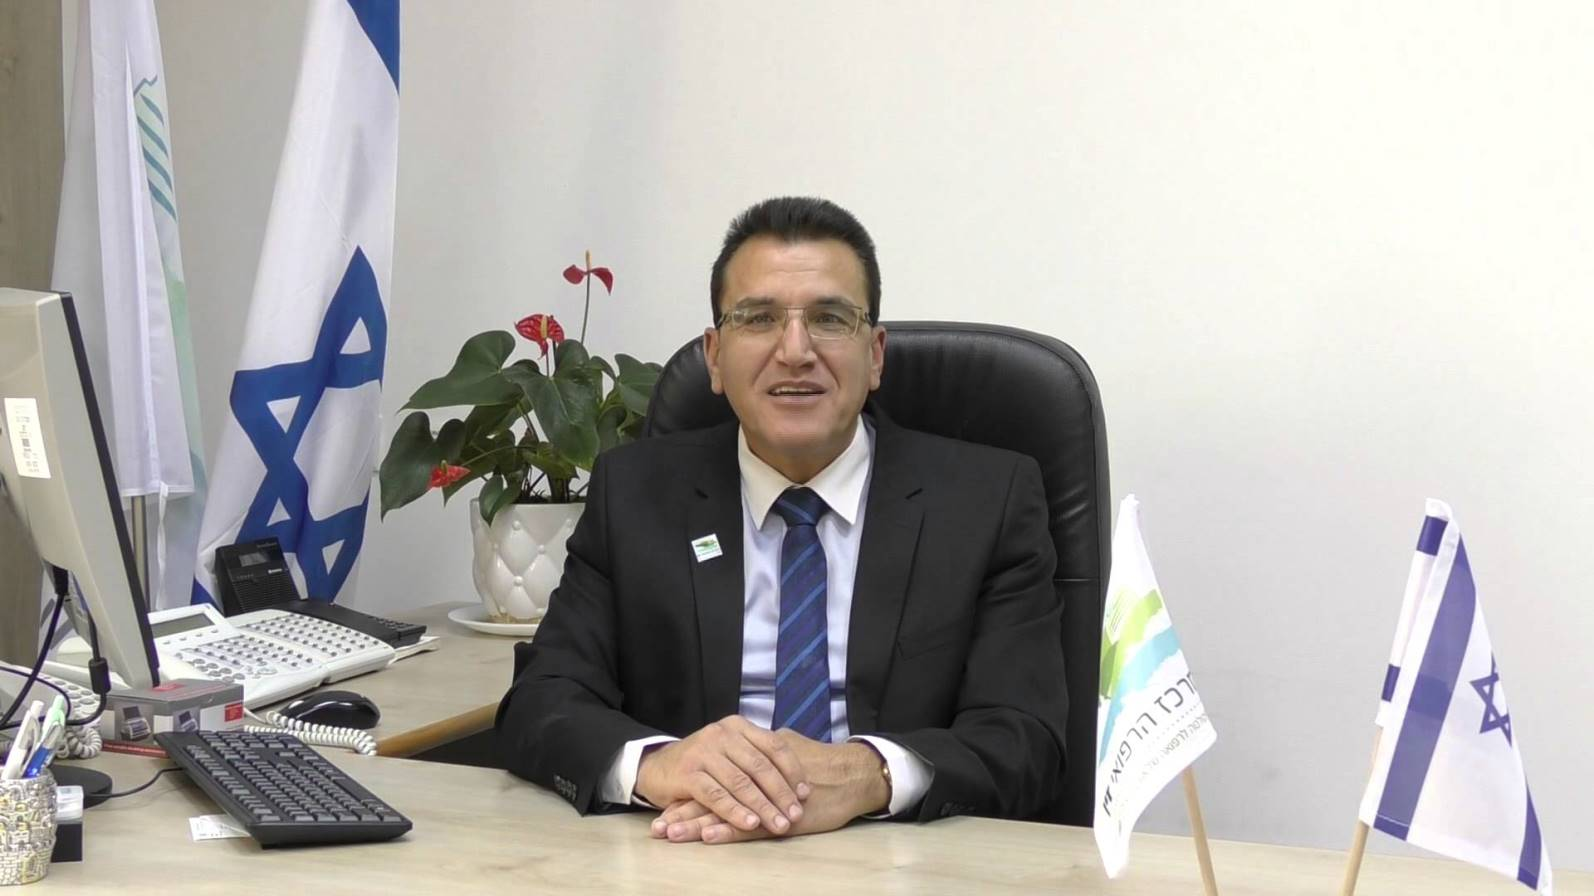 Dr. Salman Zarka, director-general of Ziv Medical Center. Photo via YouTube